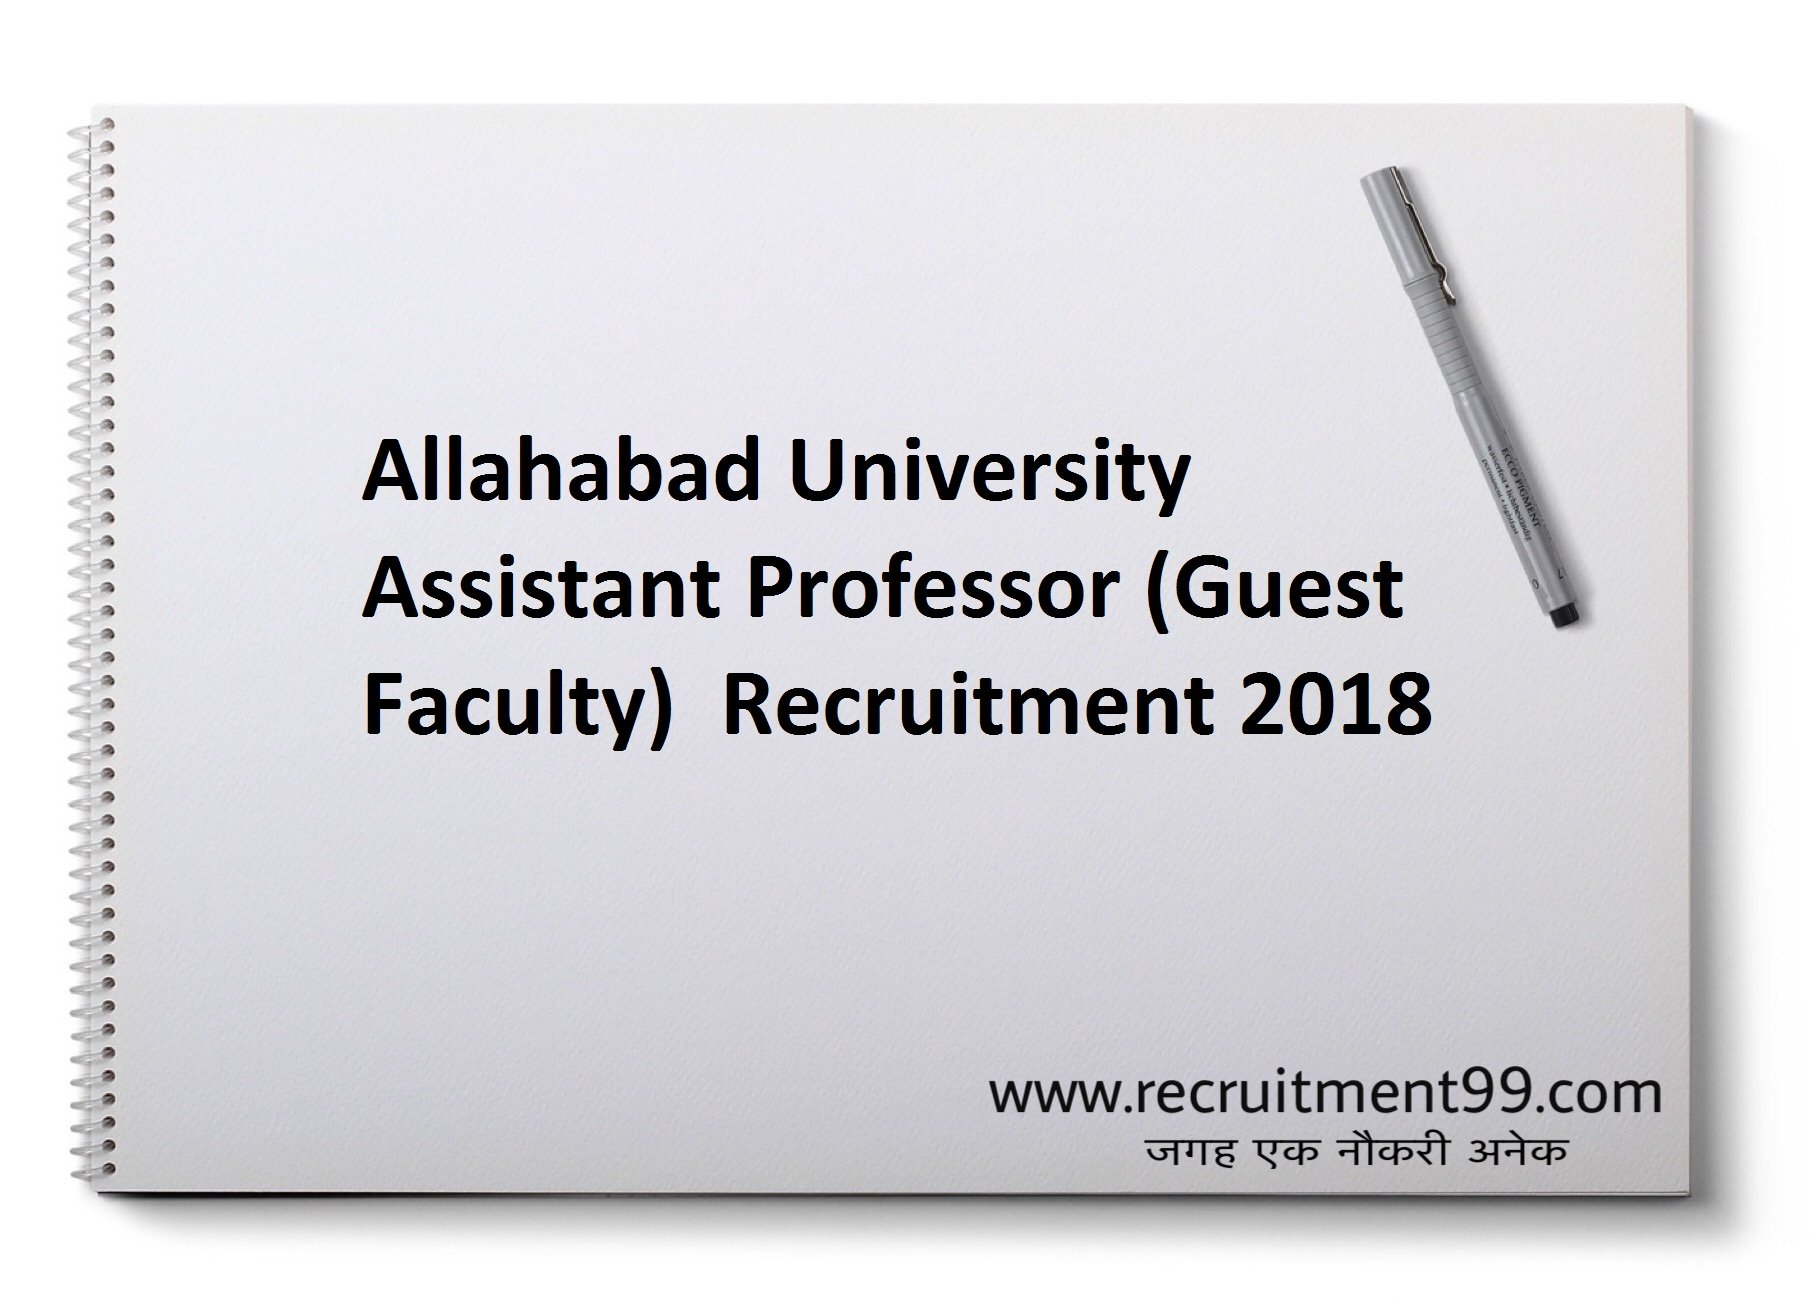 Allahabad University Assistant Professor (Guest Faculty) Recruitment Admit Card Result 2018